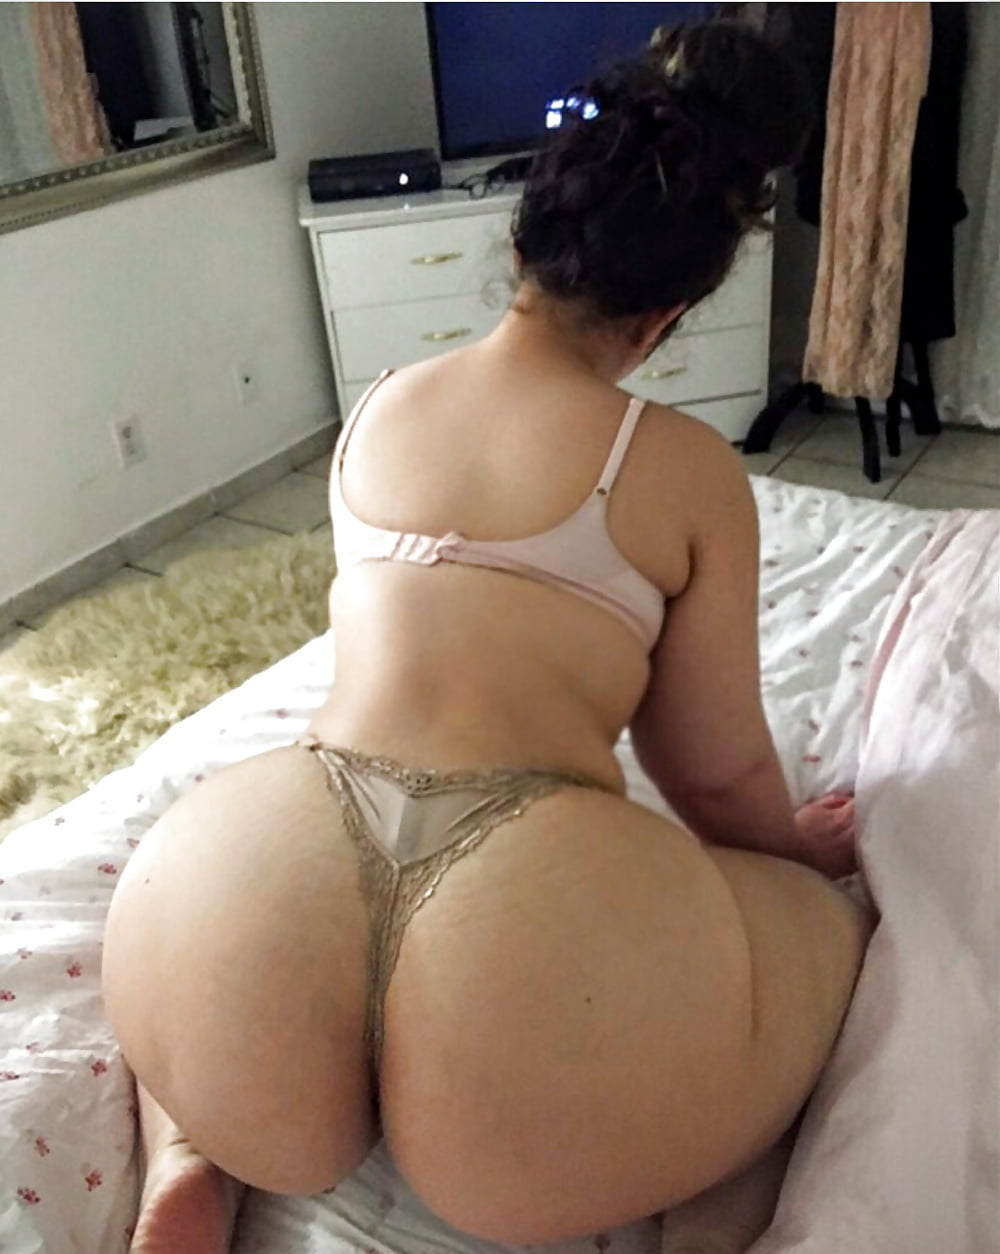 Jack off thick arab girls naked ass